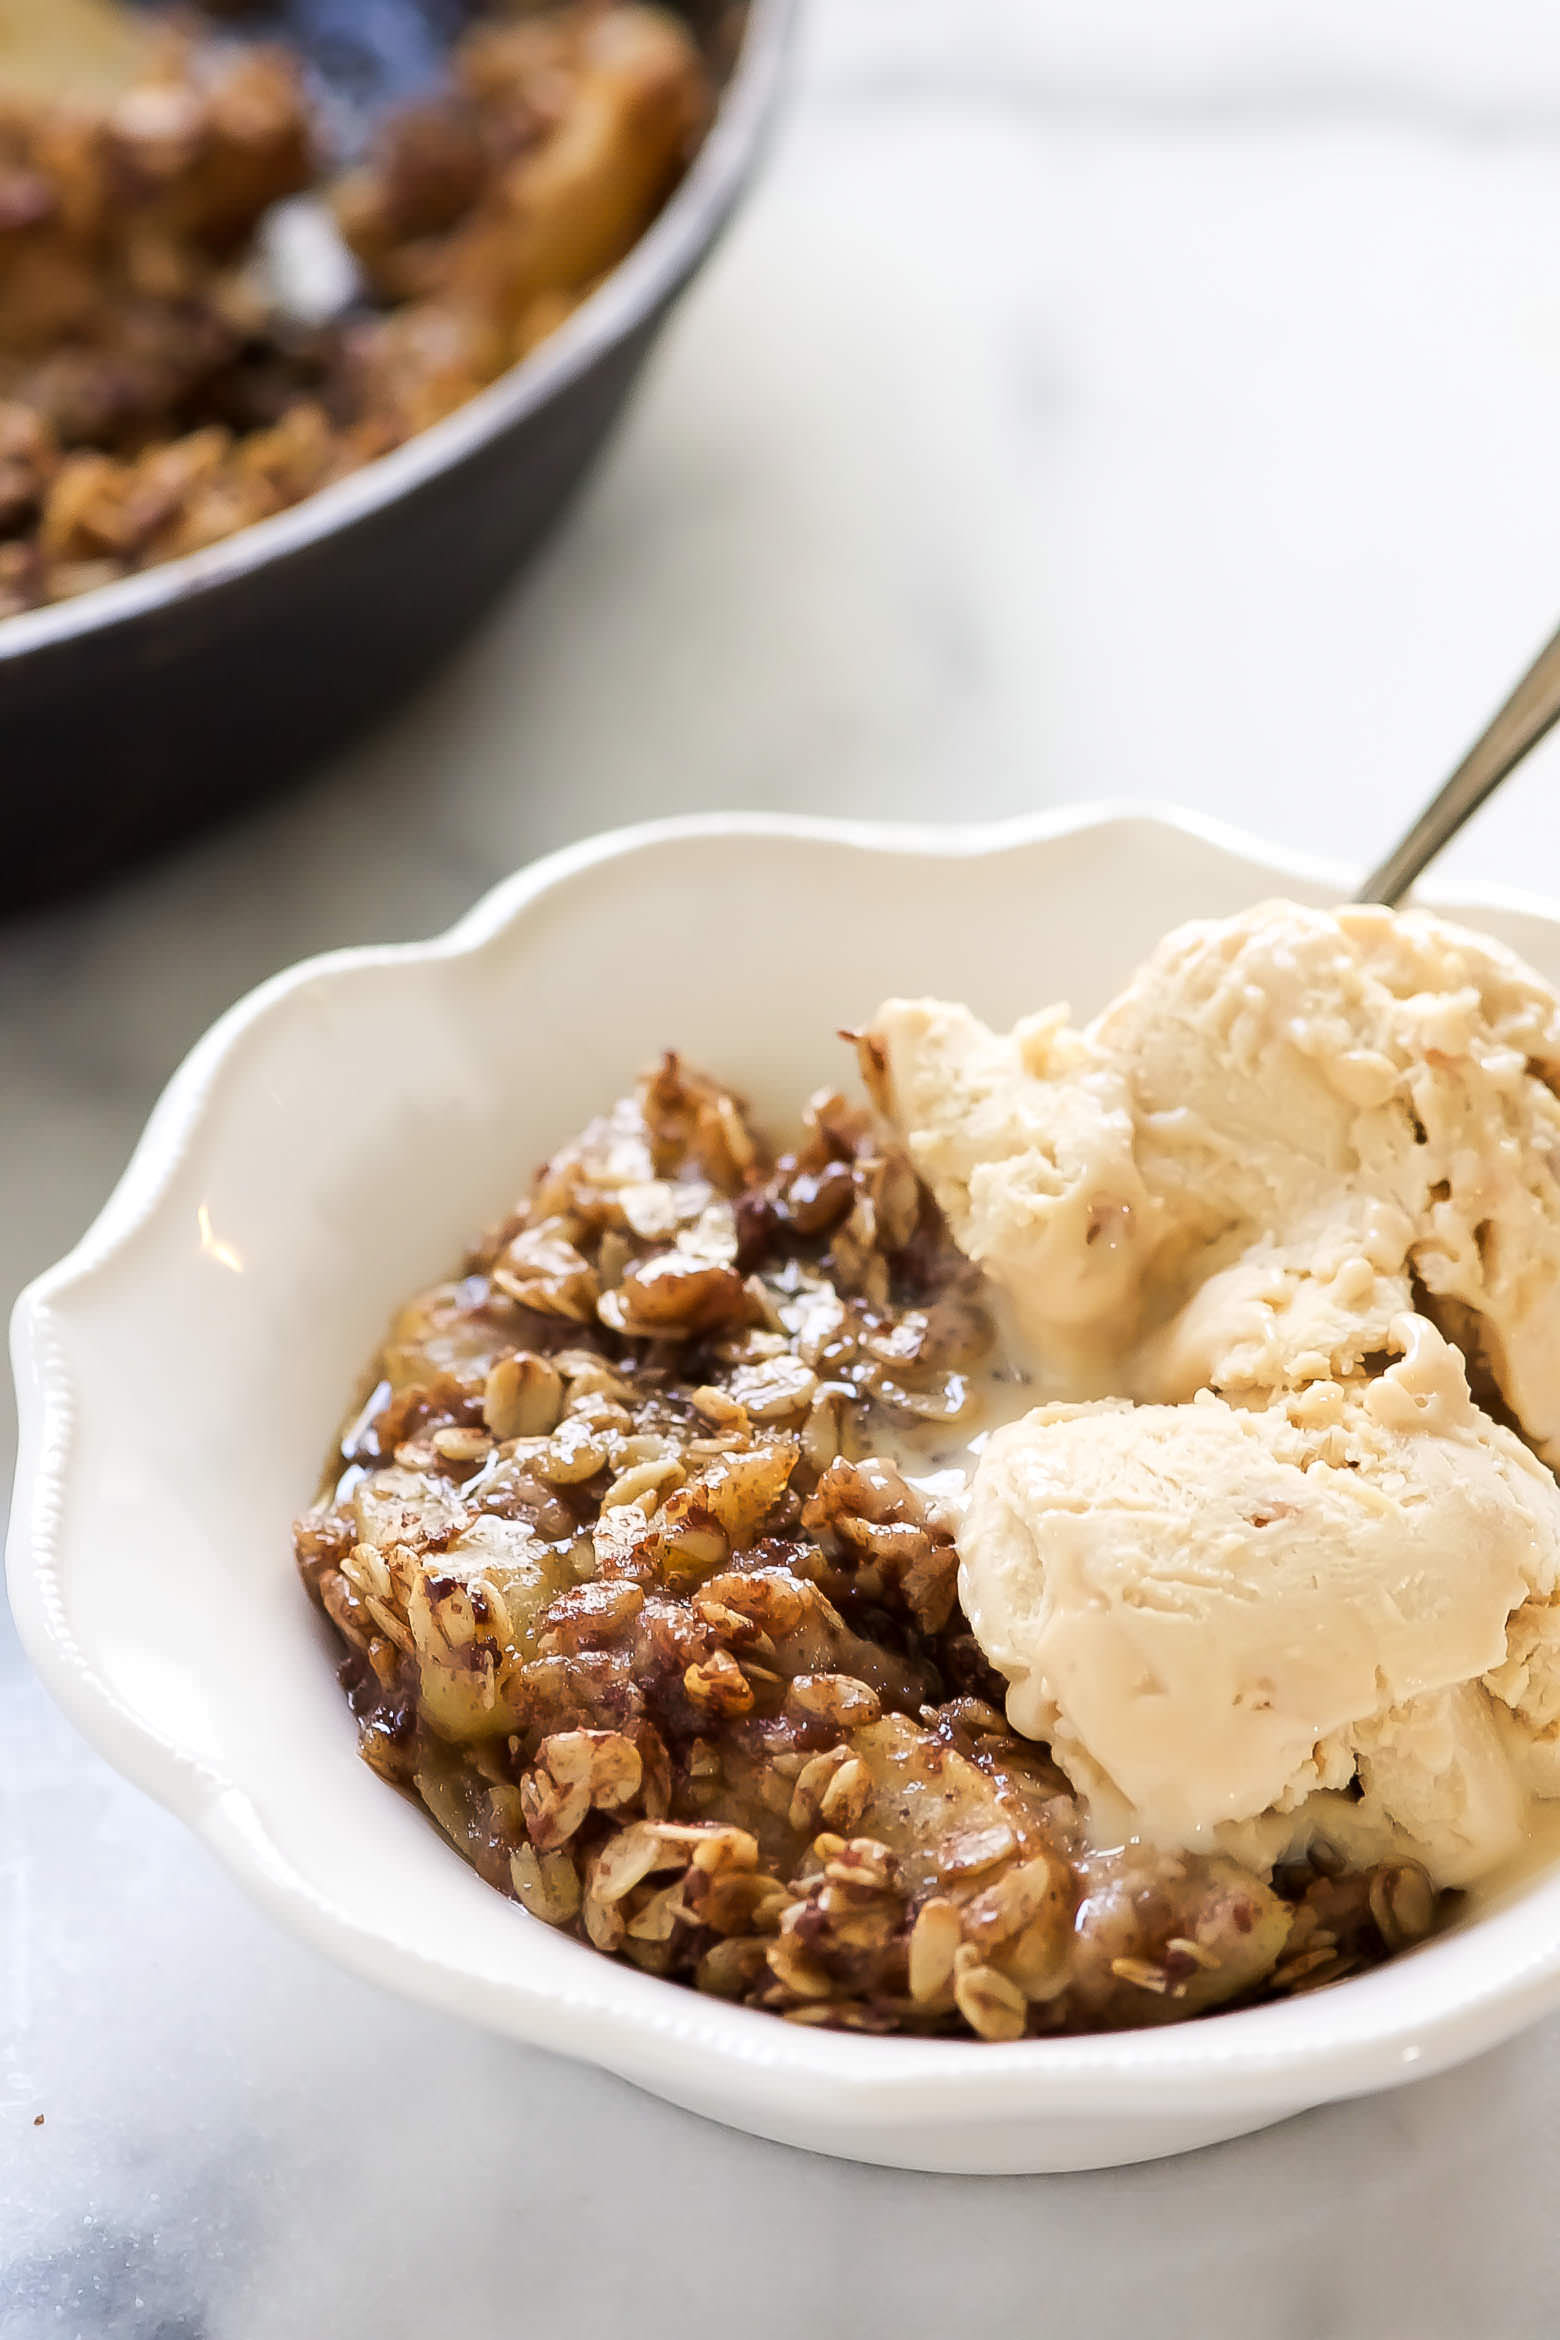 This Caramel Apple Crisp is filled with a gooey, naturally sweetened caramel sauce and topped with a wholesome oat topping! With only 8 ingredients, this secretly healthier dessert will be on repeat all season long!